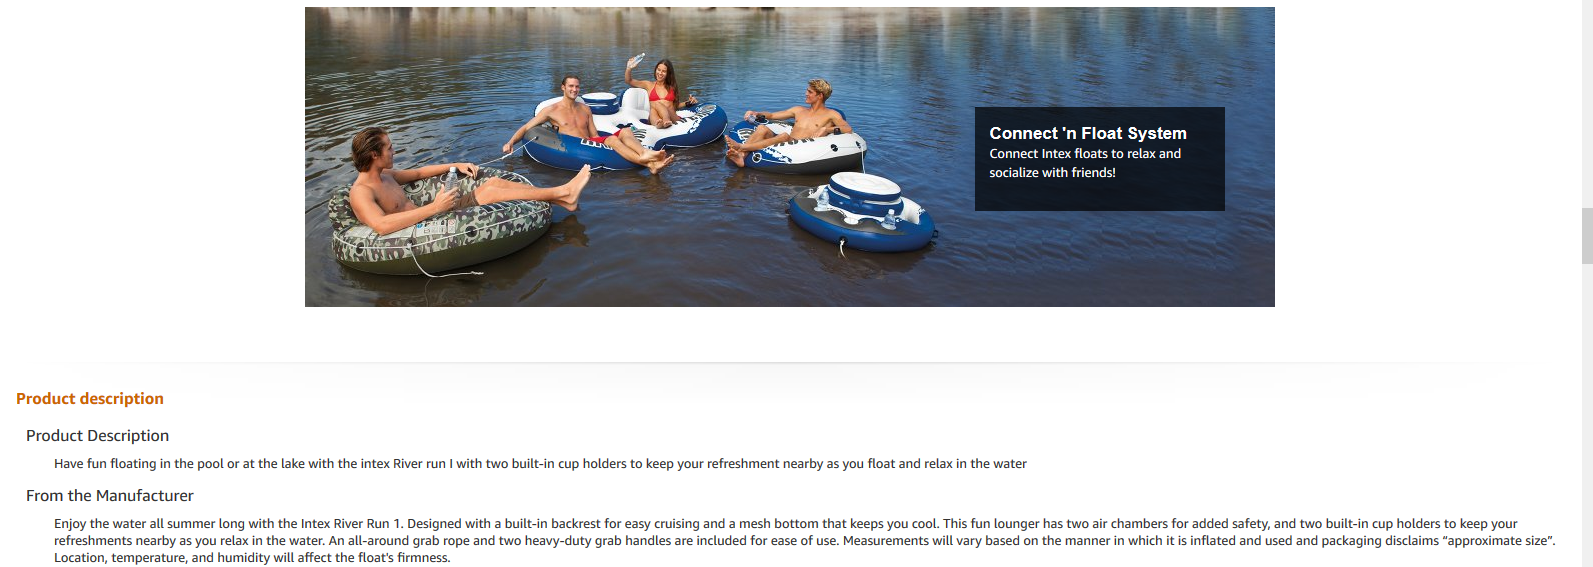 Intex River Run Description on Amazon